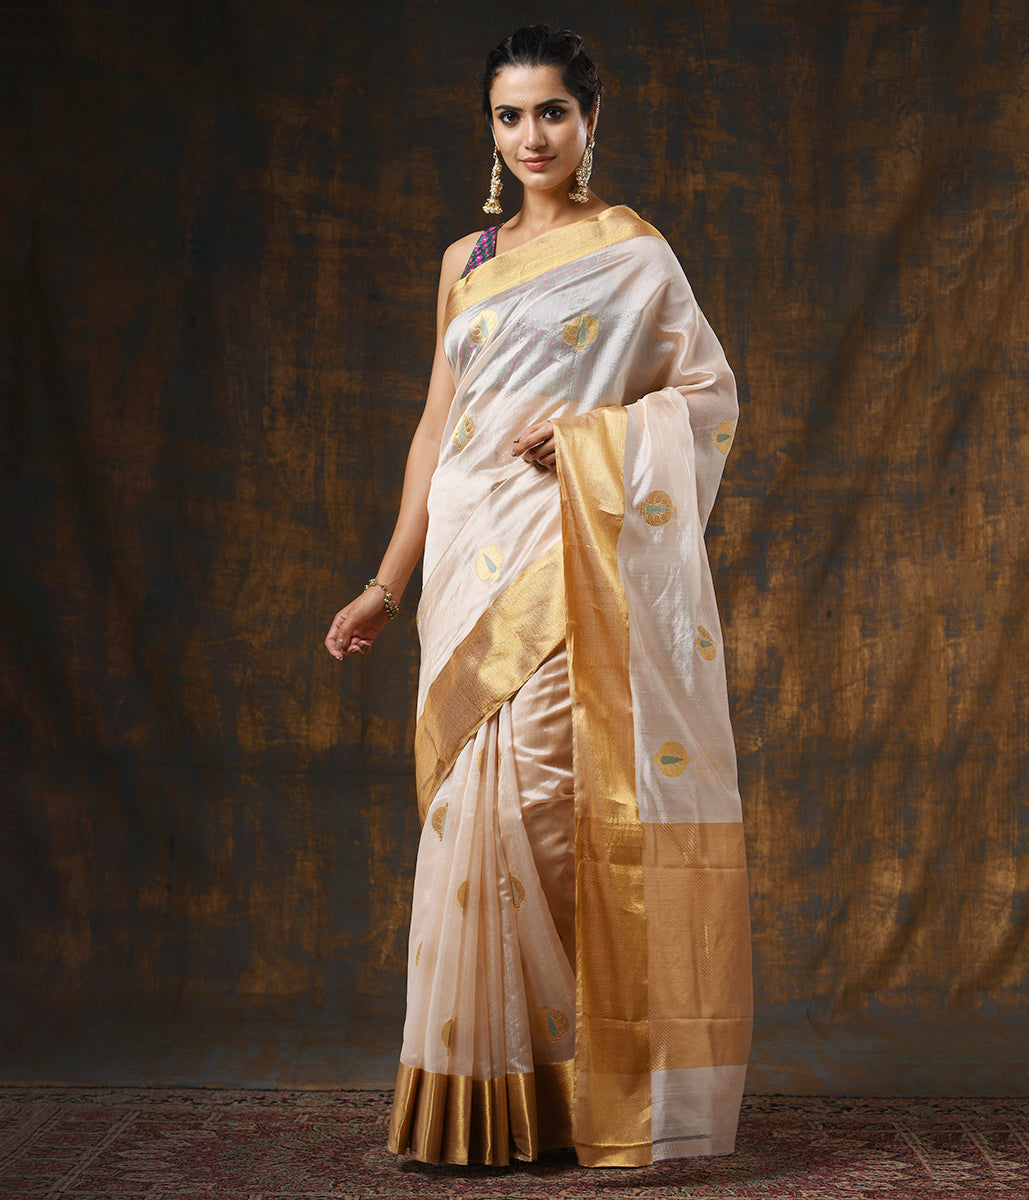 Handwoven Pale Peach Chanderi Silk Saree with Anaar Boota